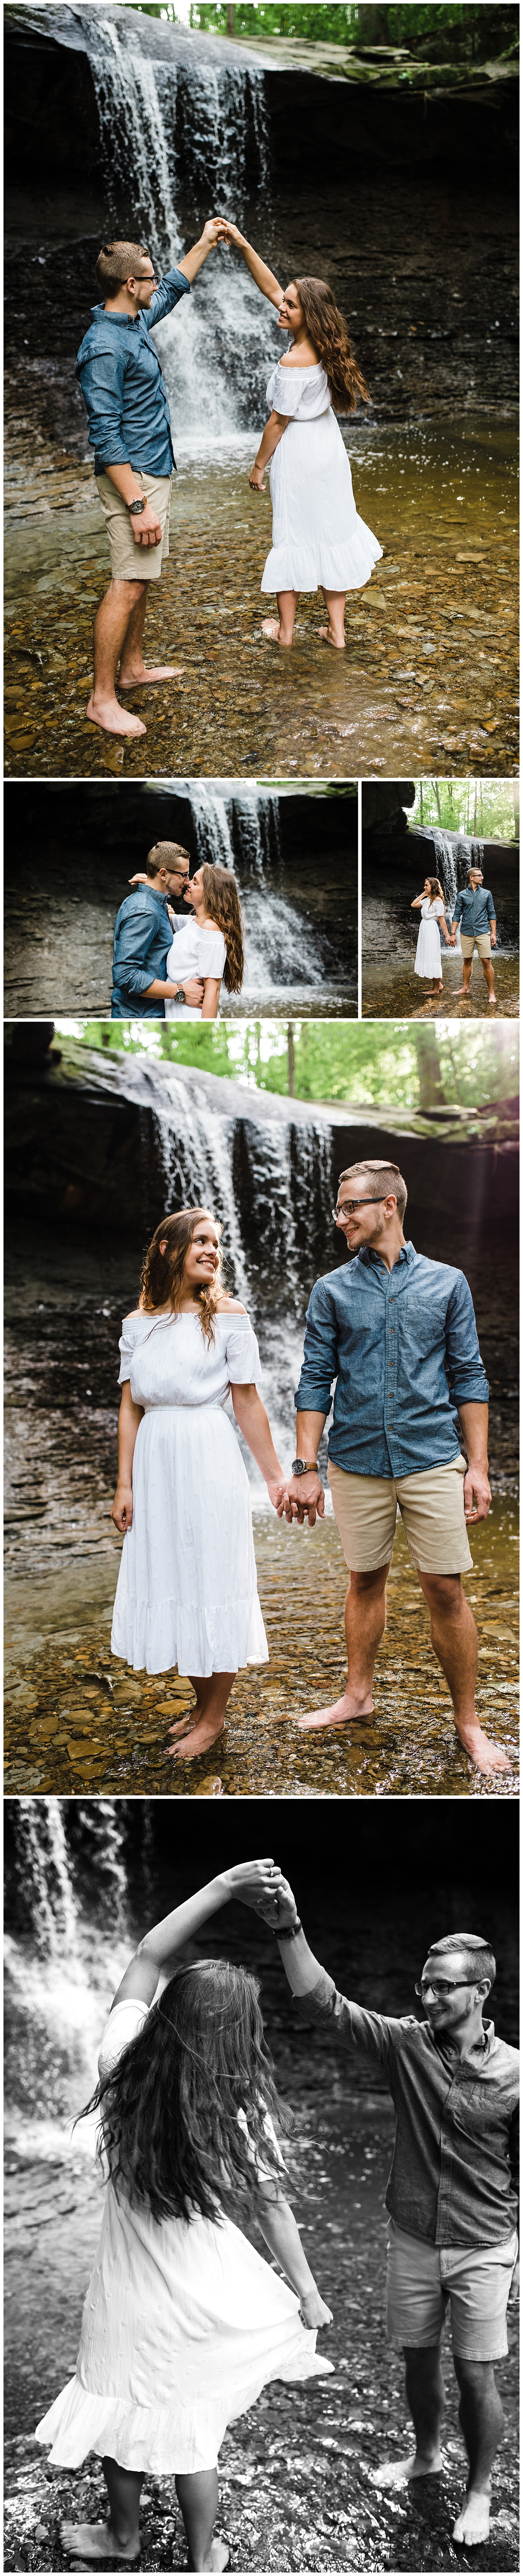 Easterday Creative | Adventurous wedding photographer and storyteller | Serving NC, SC and beyond! | Olivia + Ross | Adventurous Blue Hen Falls Engagement